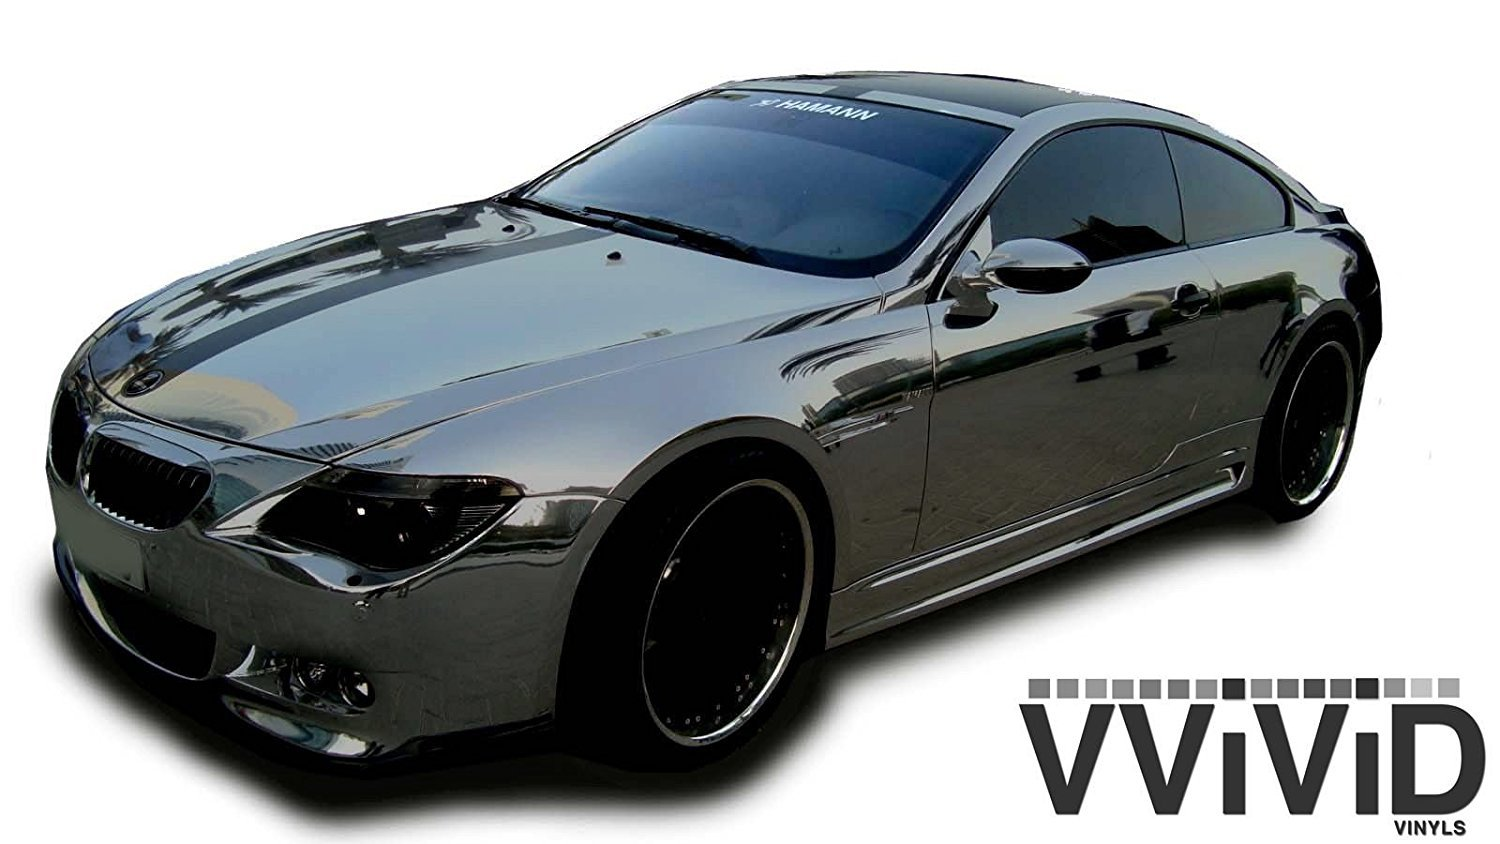 VViViD8 Black mirror chrome vinyl car wrap 3ft x 5ft self adhesive film decal air release bubble-free with Free Tool Set Kit Included